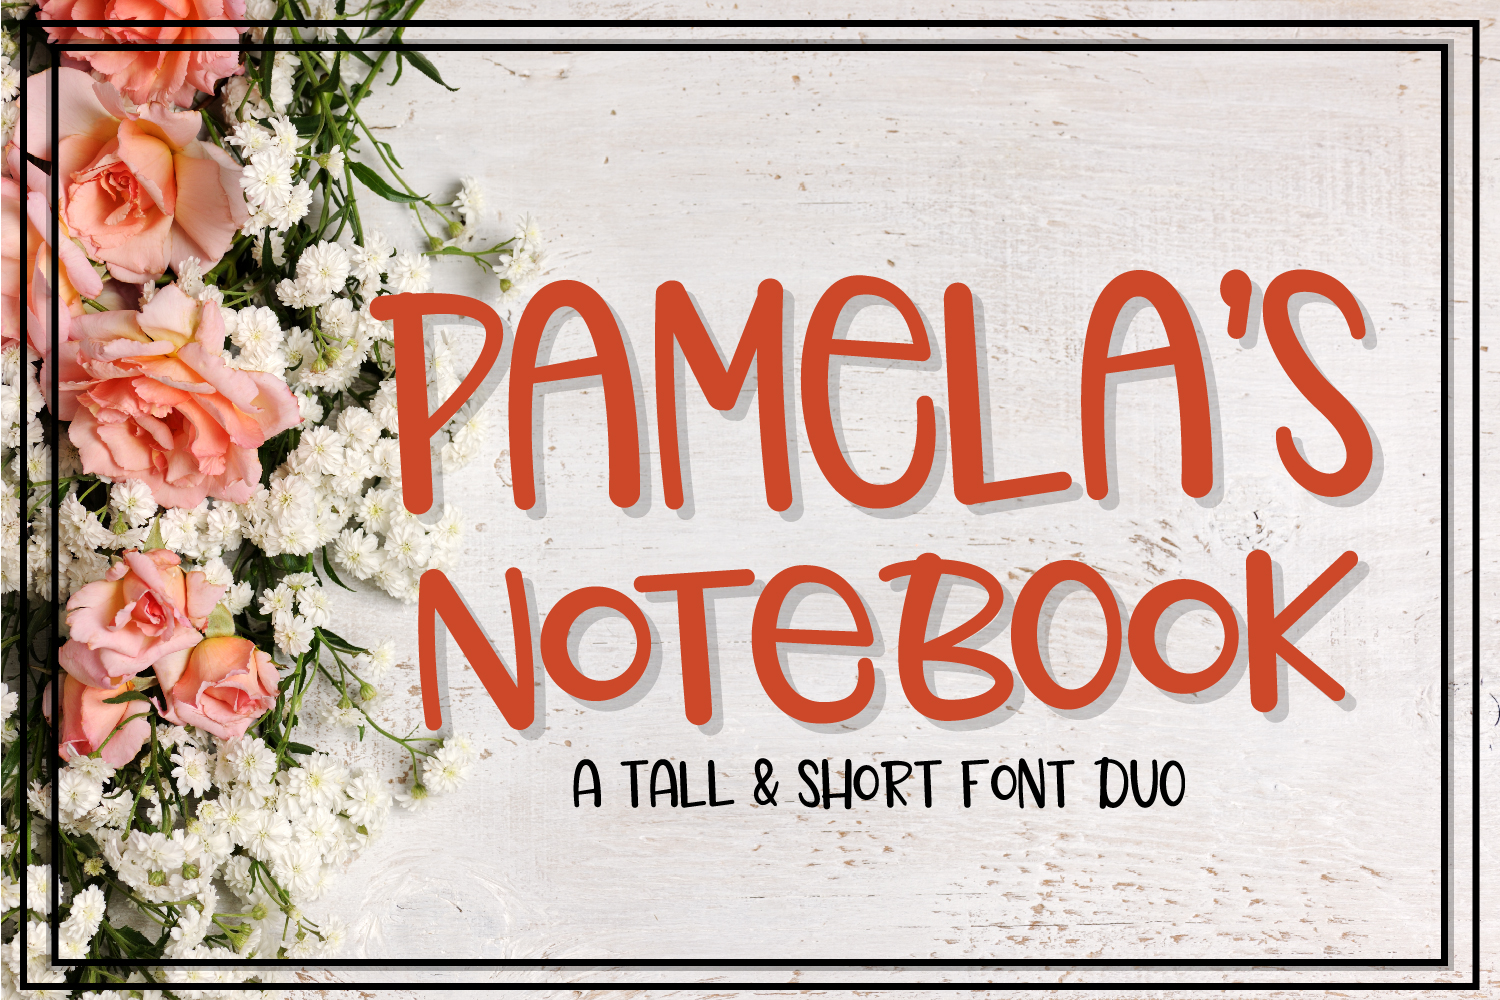 Pamela's Notebook - Font Duo example image 1